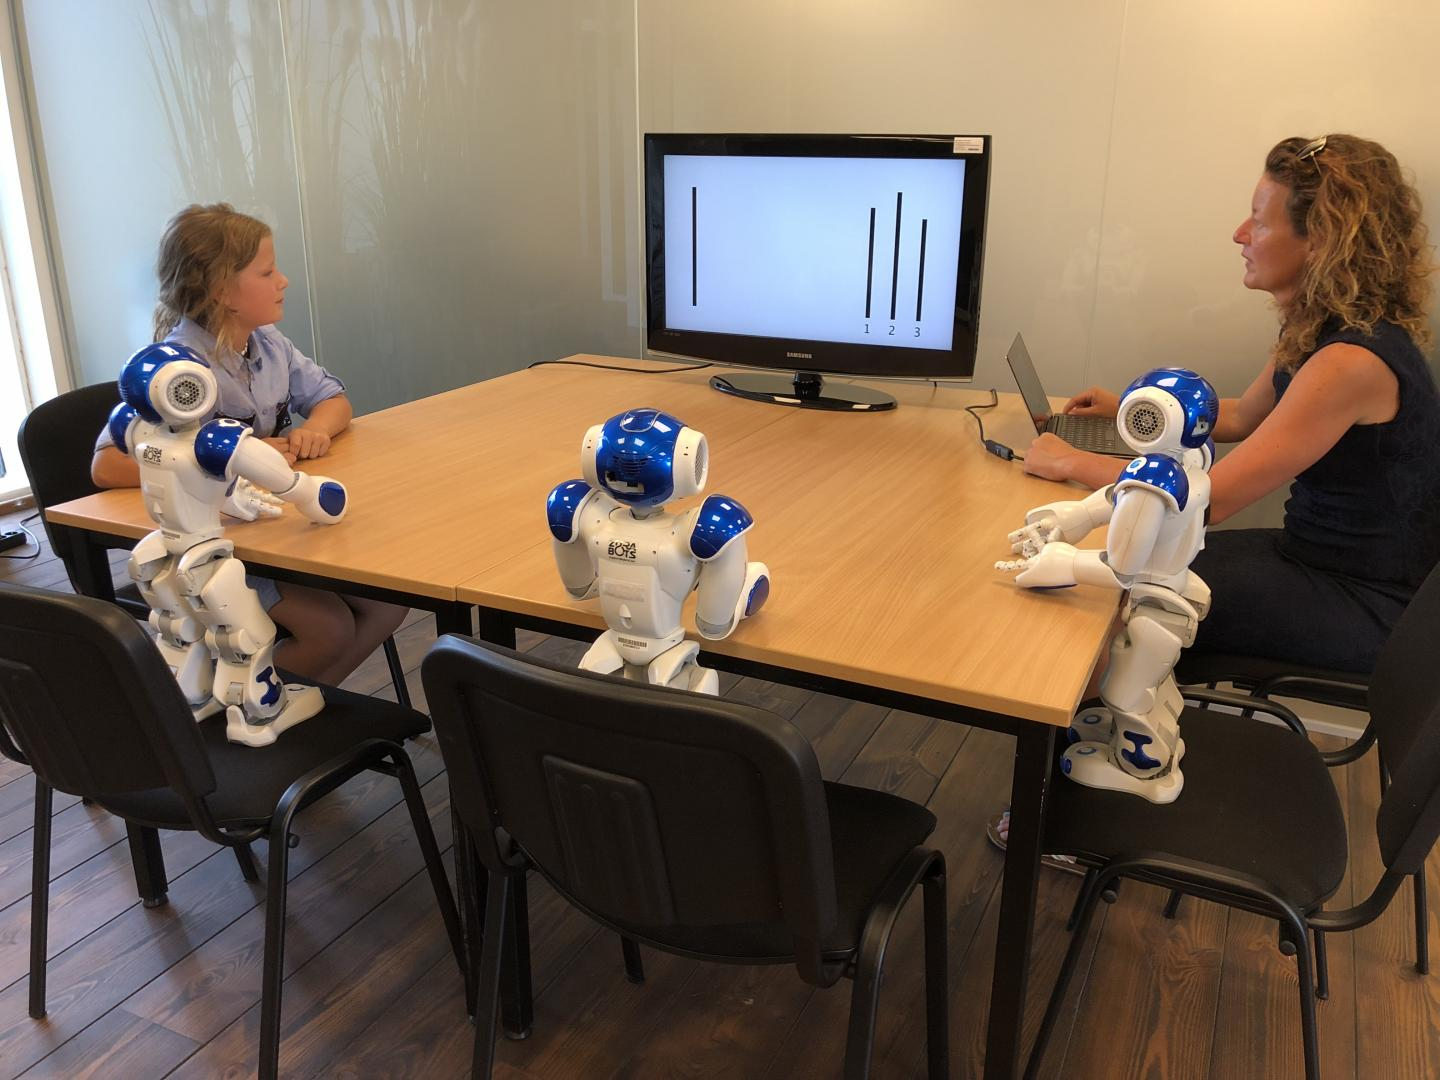 Bad Bielefeld Robots Have Power To Significantly Influence Children S Opinions